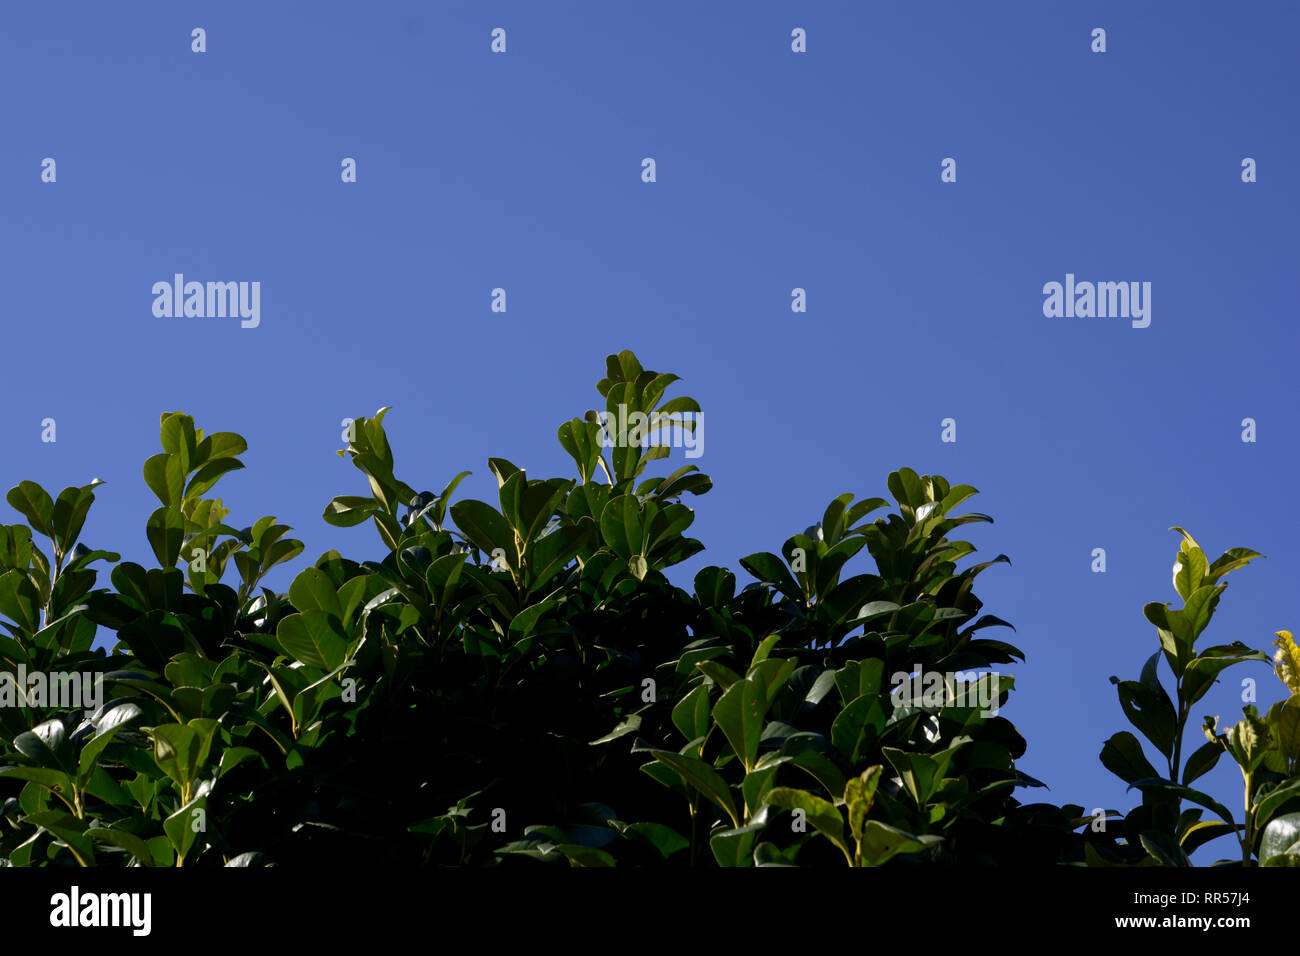 fresh bright-green shoots of a prunus laurocerasus in early spring in front of clear azure sky, cherry laurel hedge with young green leaves in spring - Stock Image